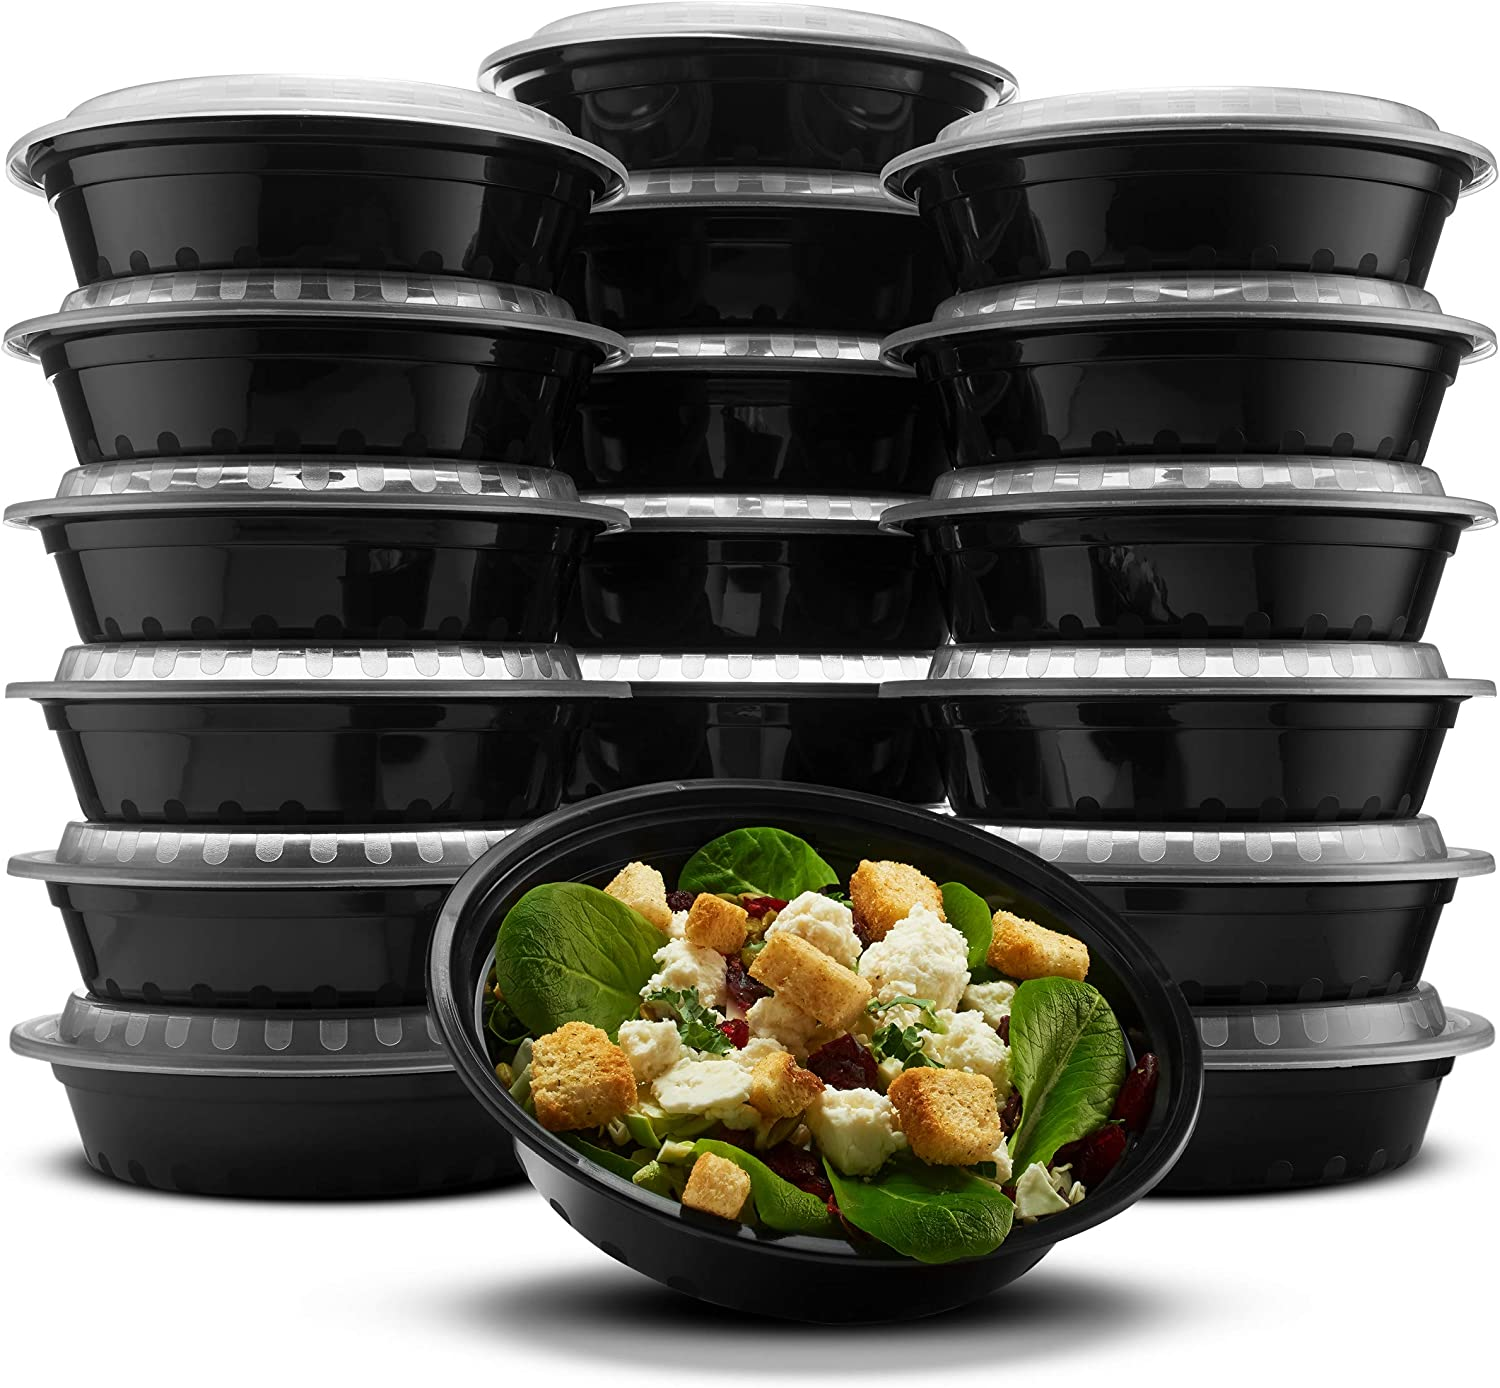 Paksh Novelty RND24OZ16PK Lunch Box Sets/Round Large Food Container with Lid for Meal Prep, Microwaveable, Freezer & Dishwasher Safe, Leak Proof, 24 Ounce, 20 Pack, Black-BK09